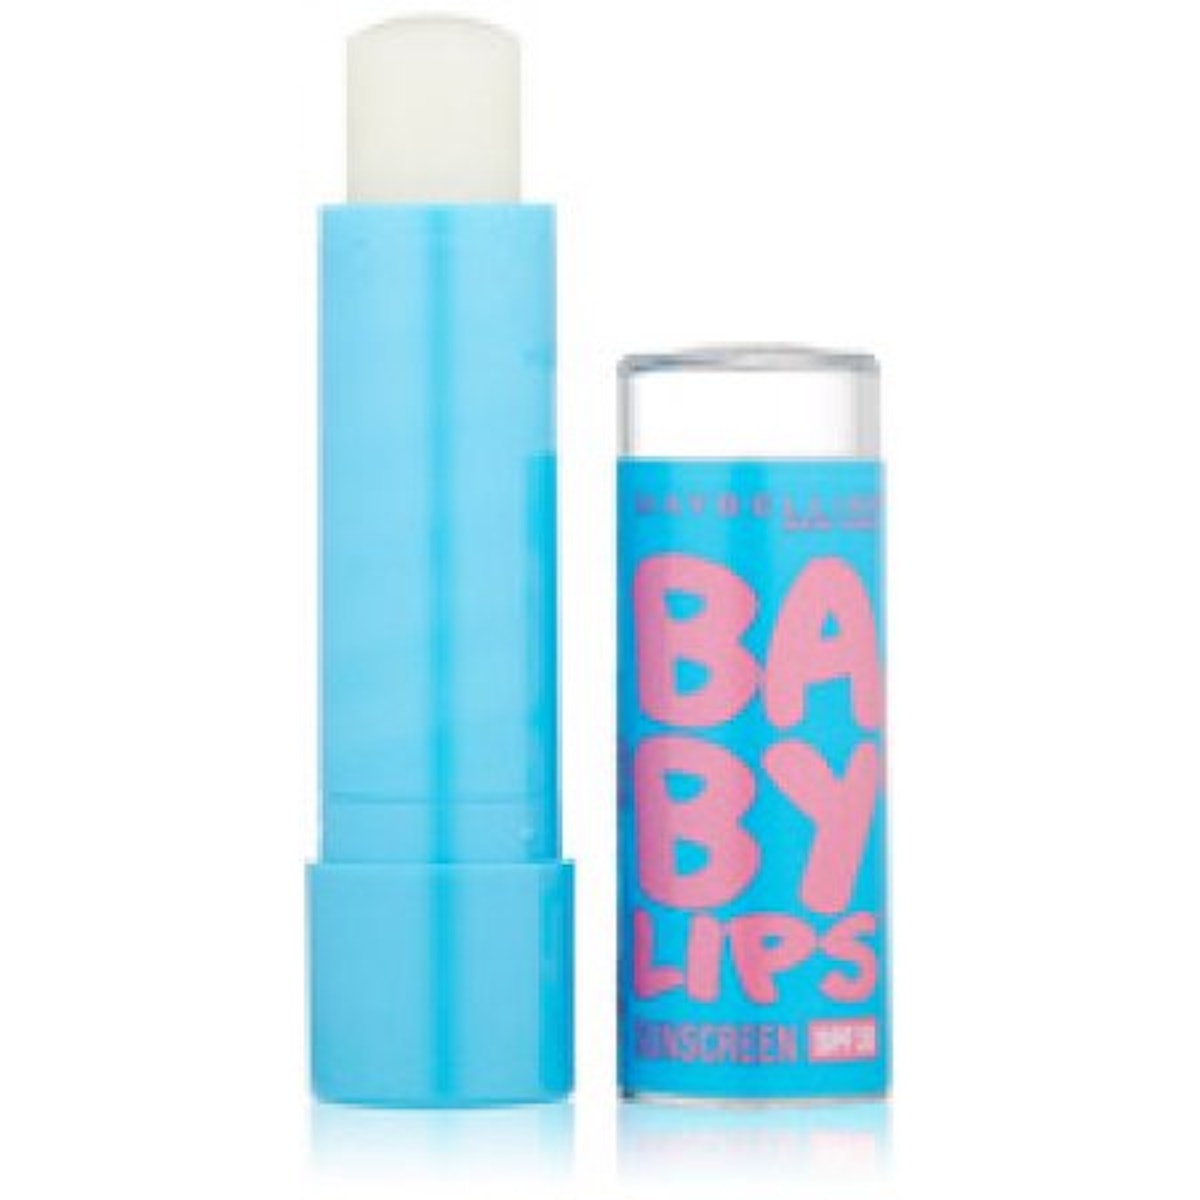 Maybelline New York Baby Lips Moisturizing Lip Balm, Quenched